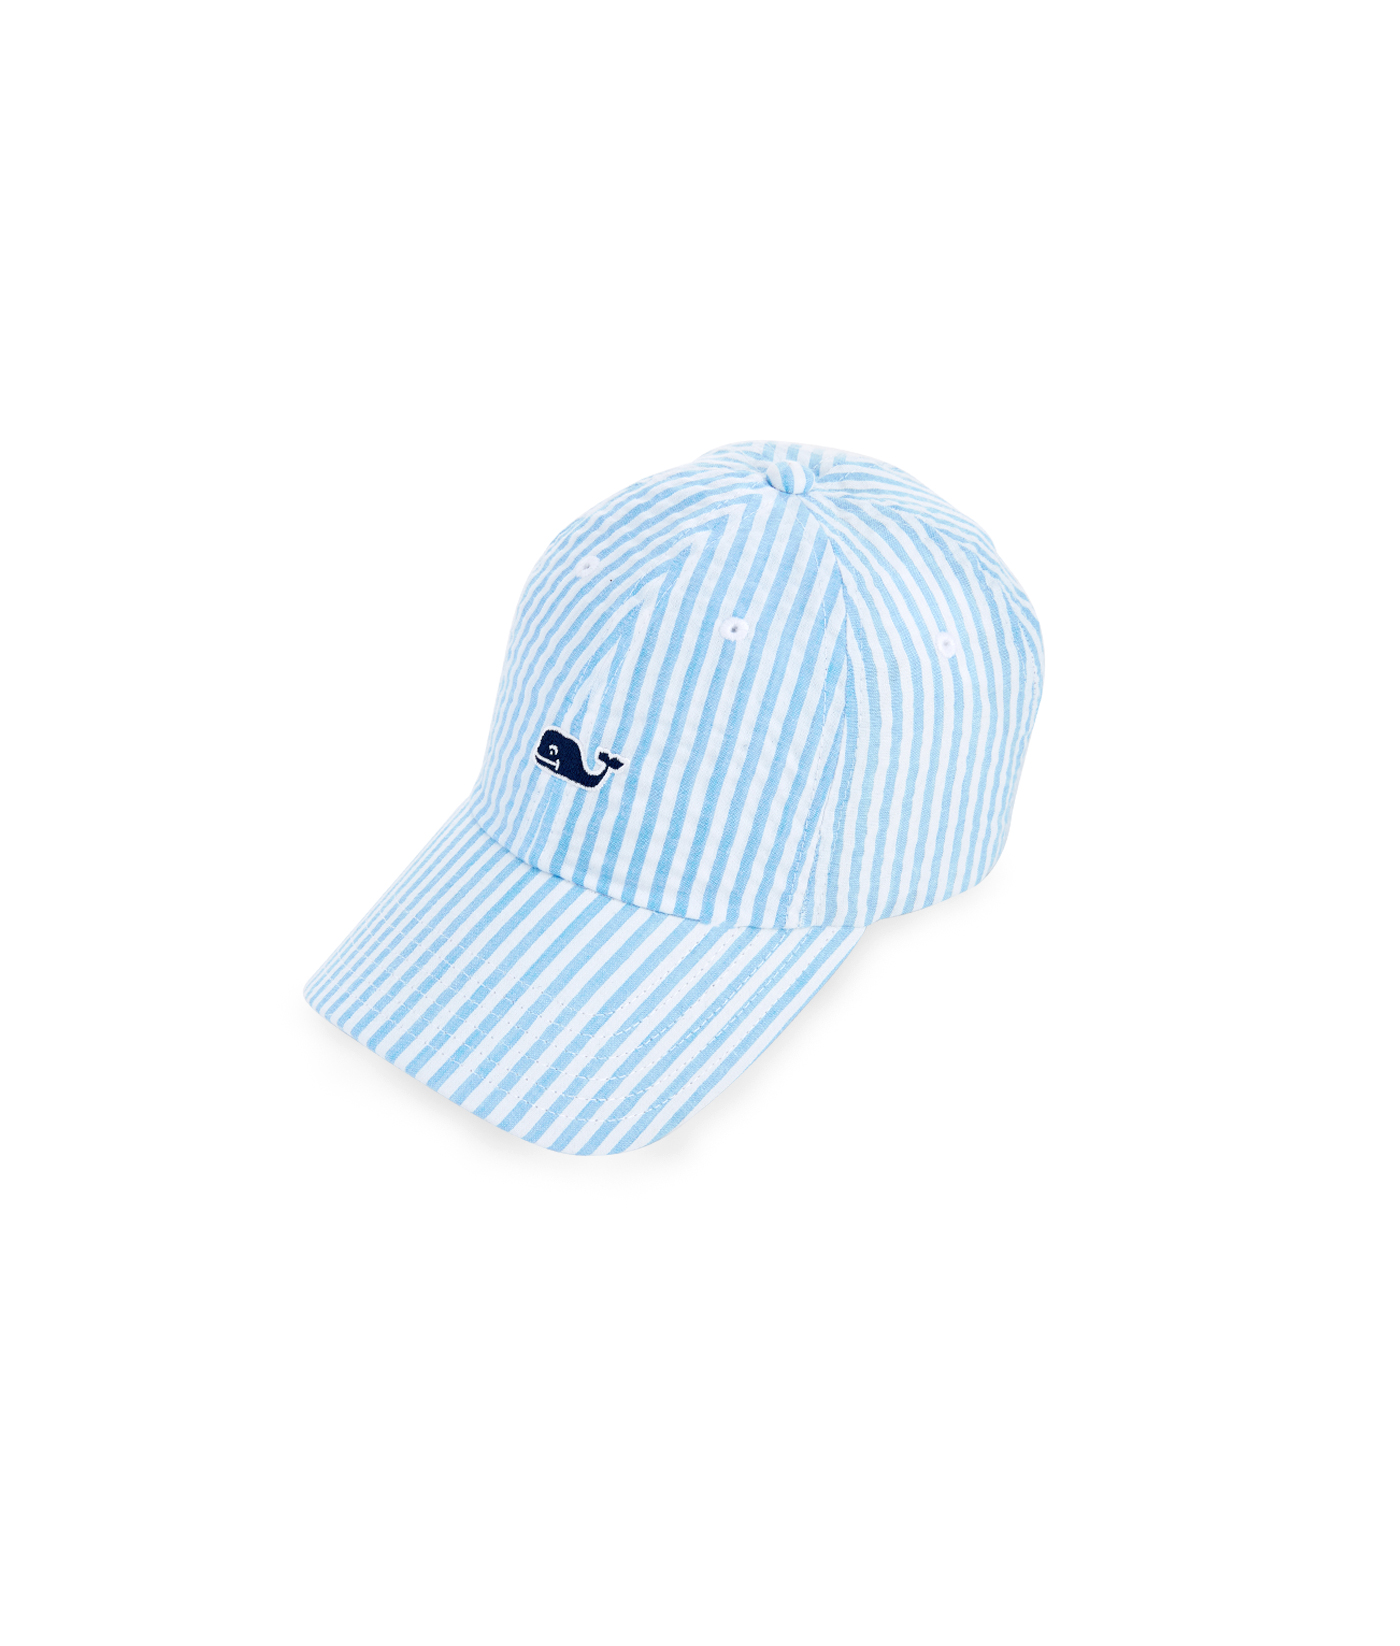 de73a28fd115 Shop Little Kids Whale Logo Seersucker Hat at vineyard vines